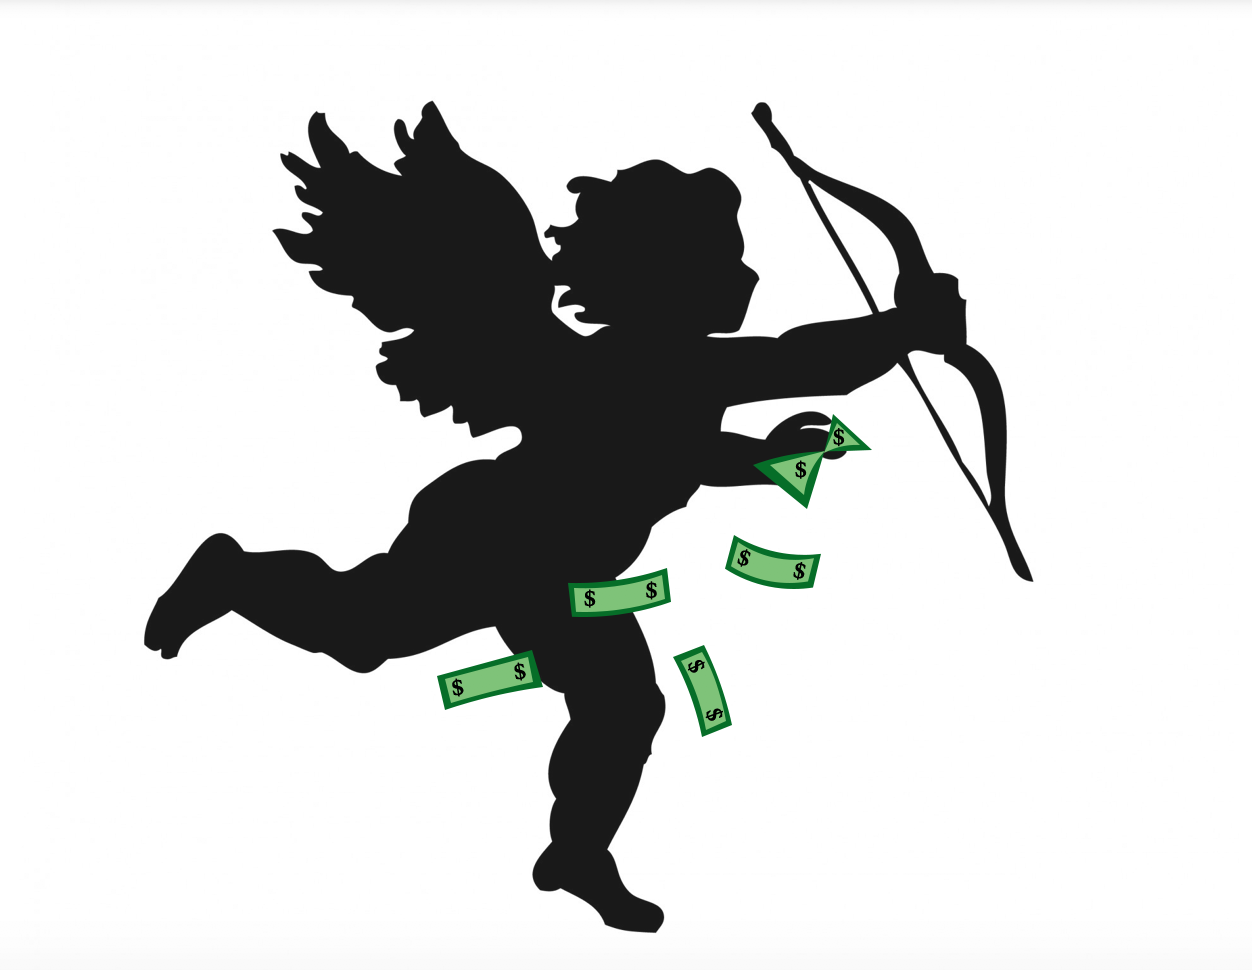 Instead of shooting out love and arrows, cupid is flying off with your money this Valentine's Day.